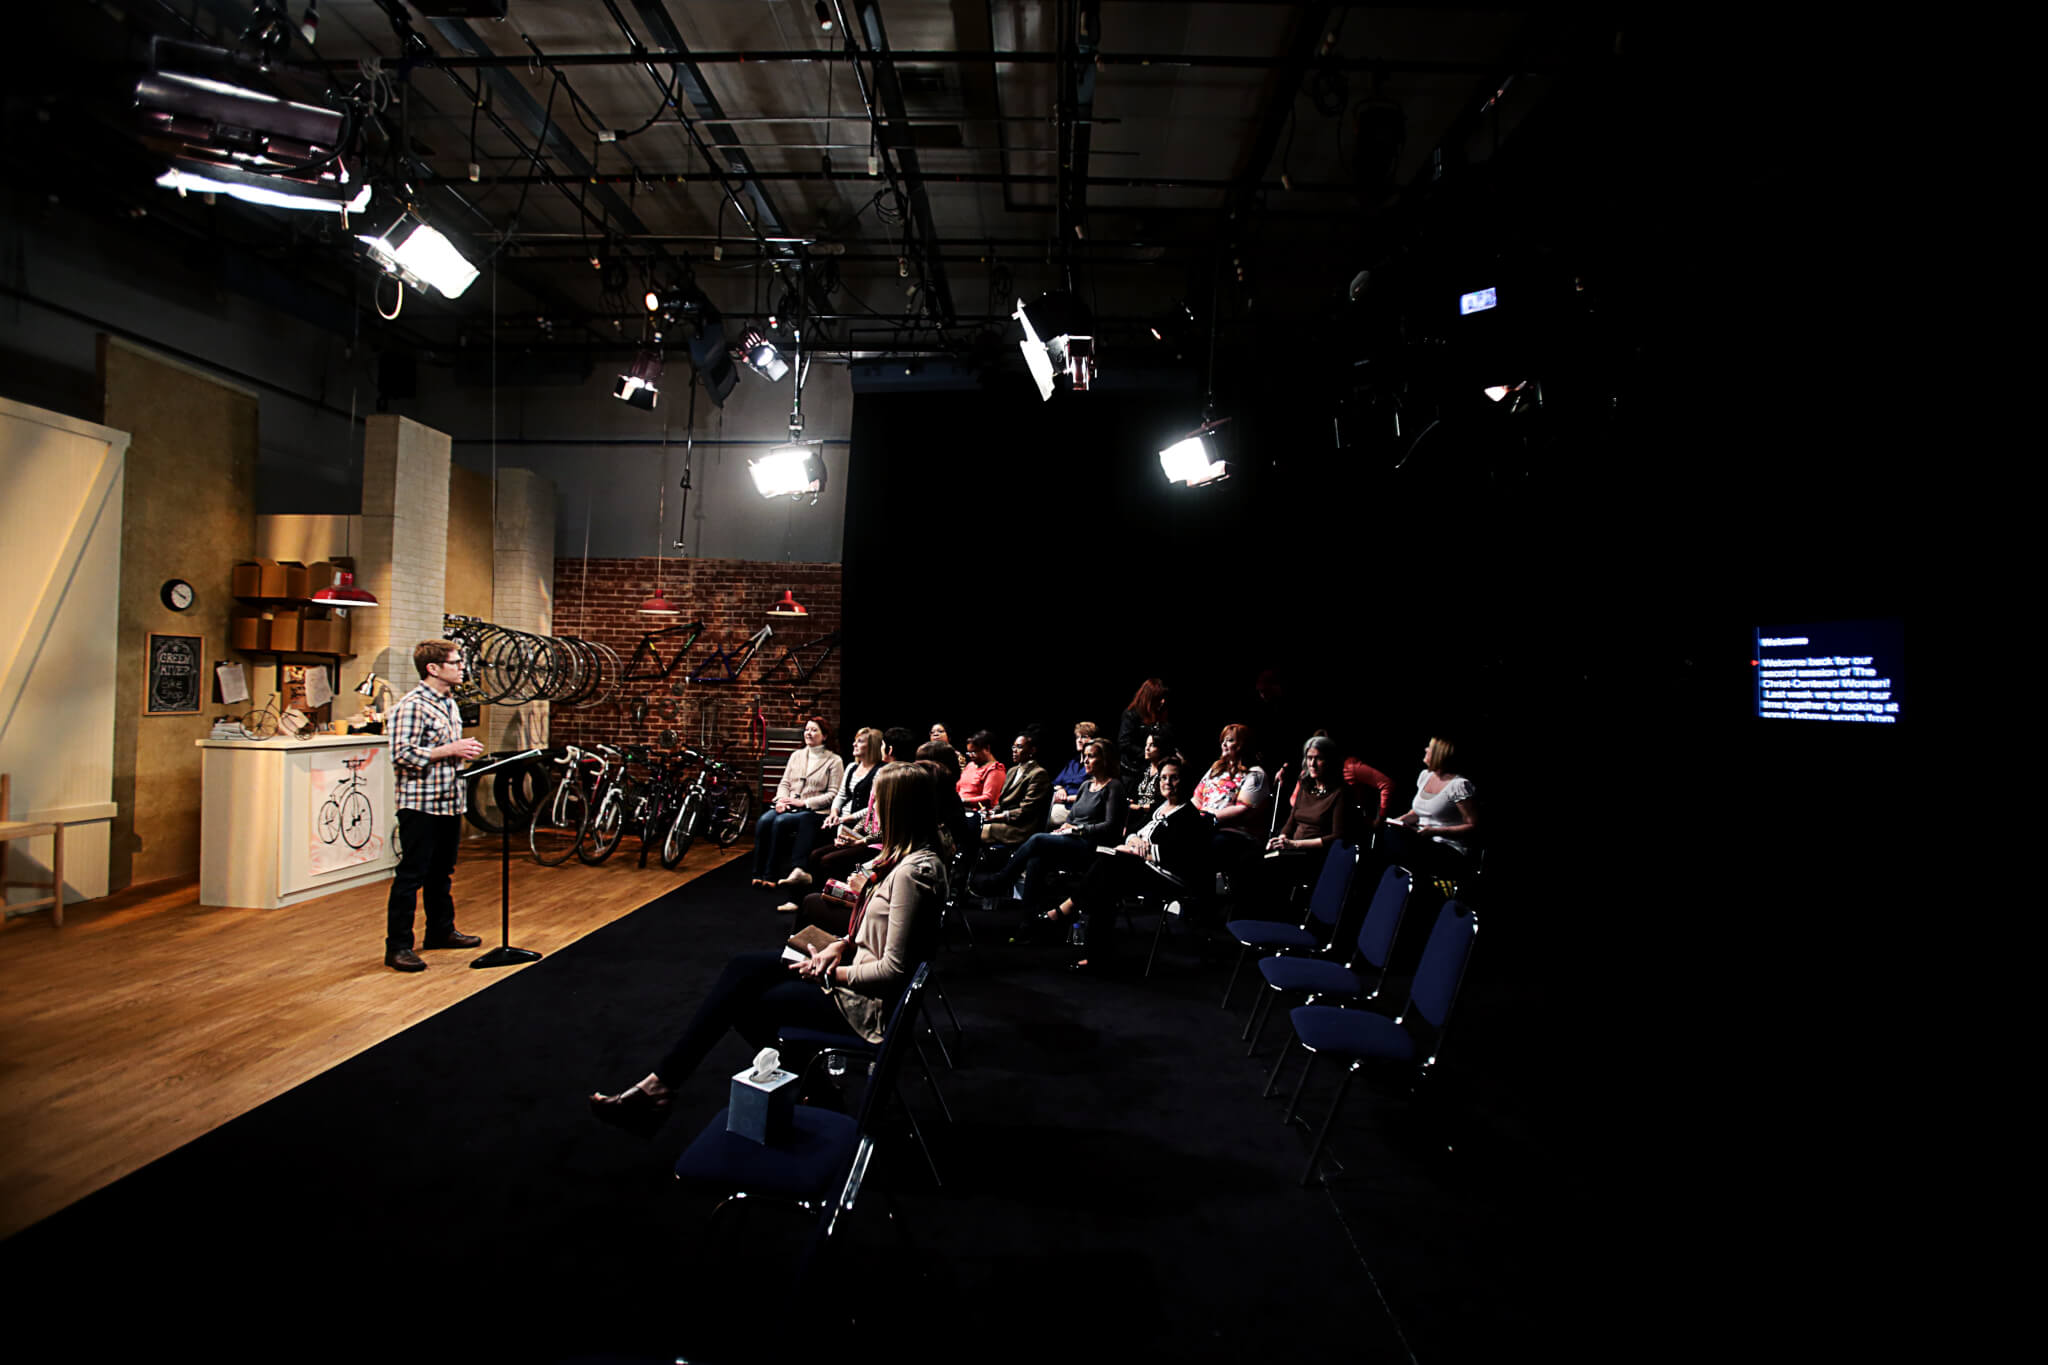 in-studio audience at Kingswood Productions